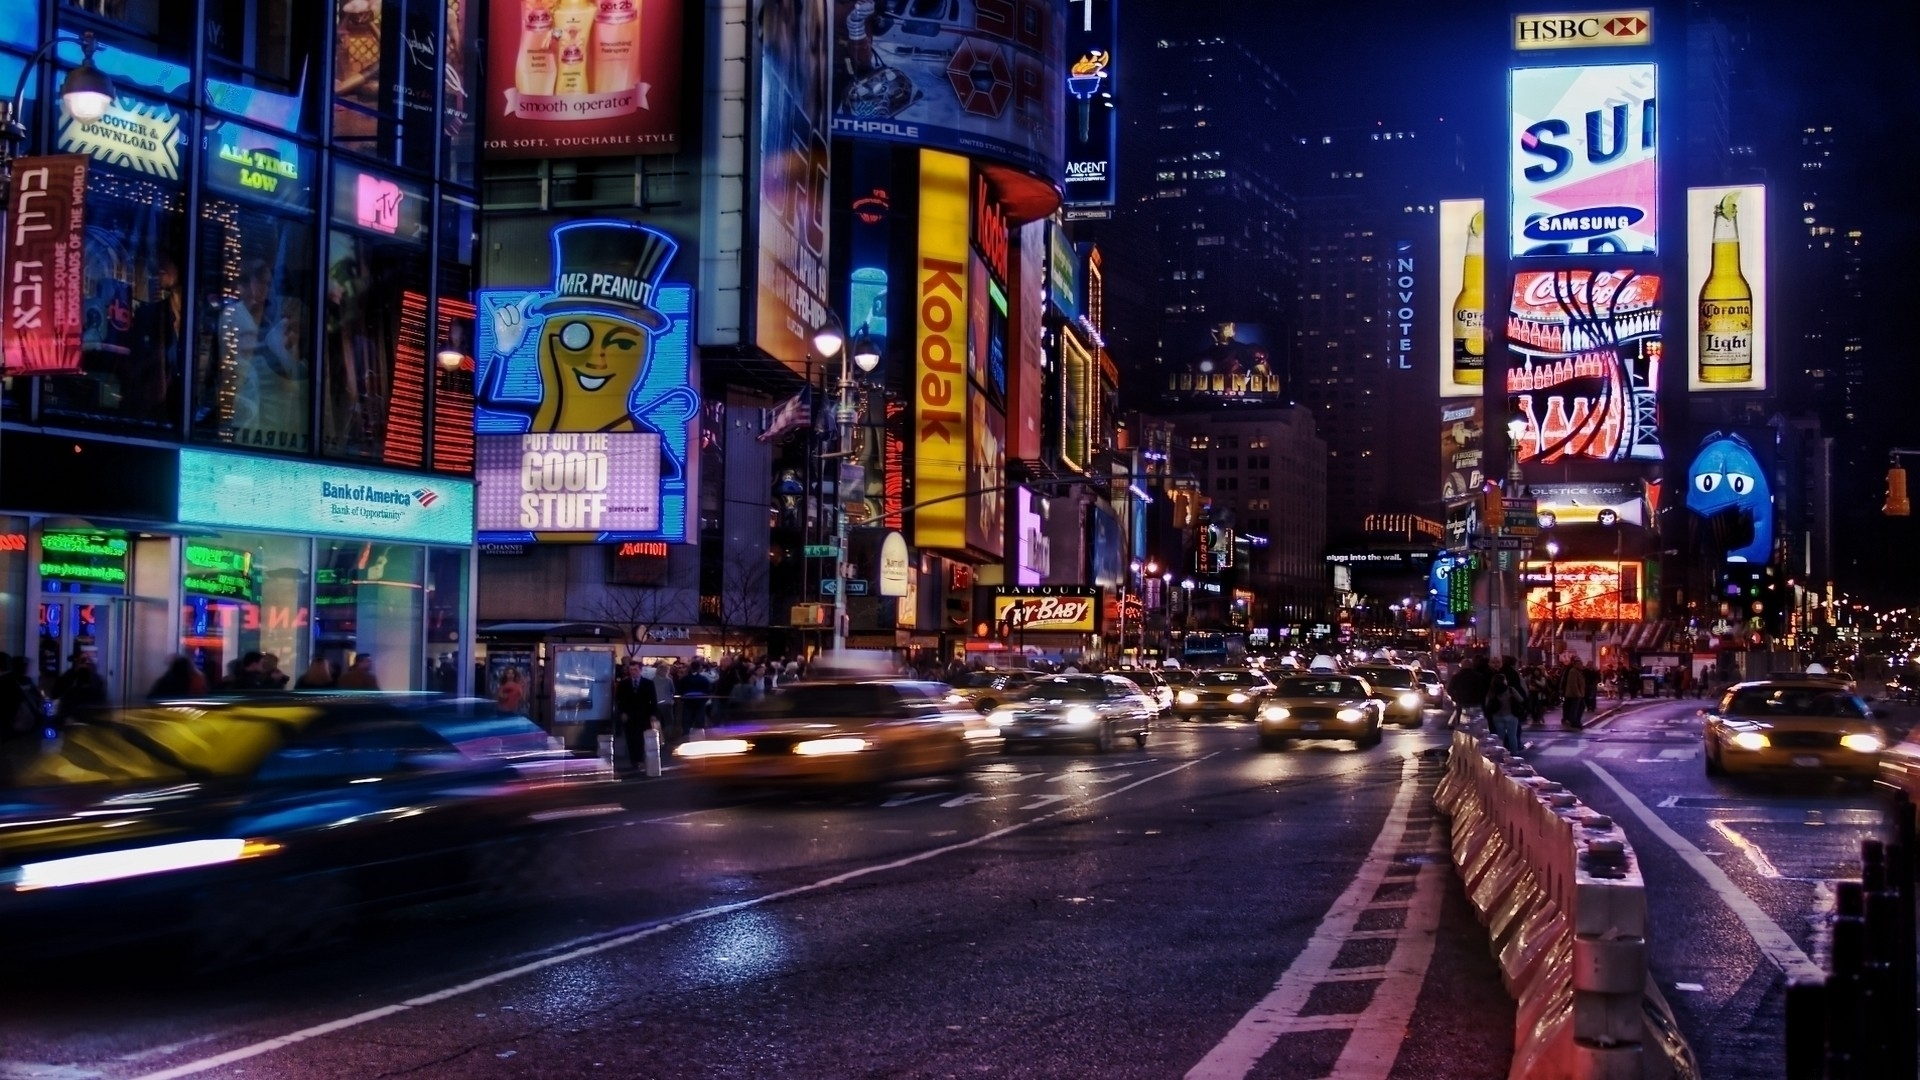 Street Wallpaper HD Night City - WallpaperSafari